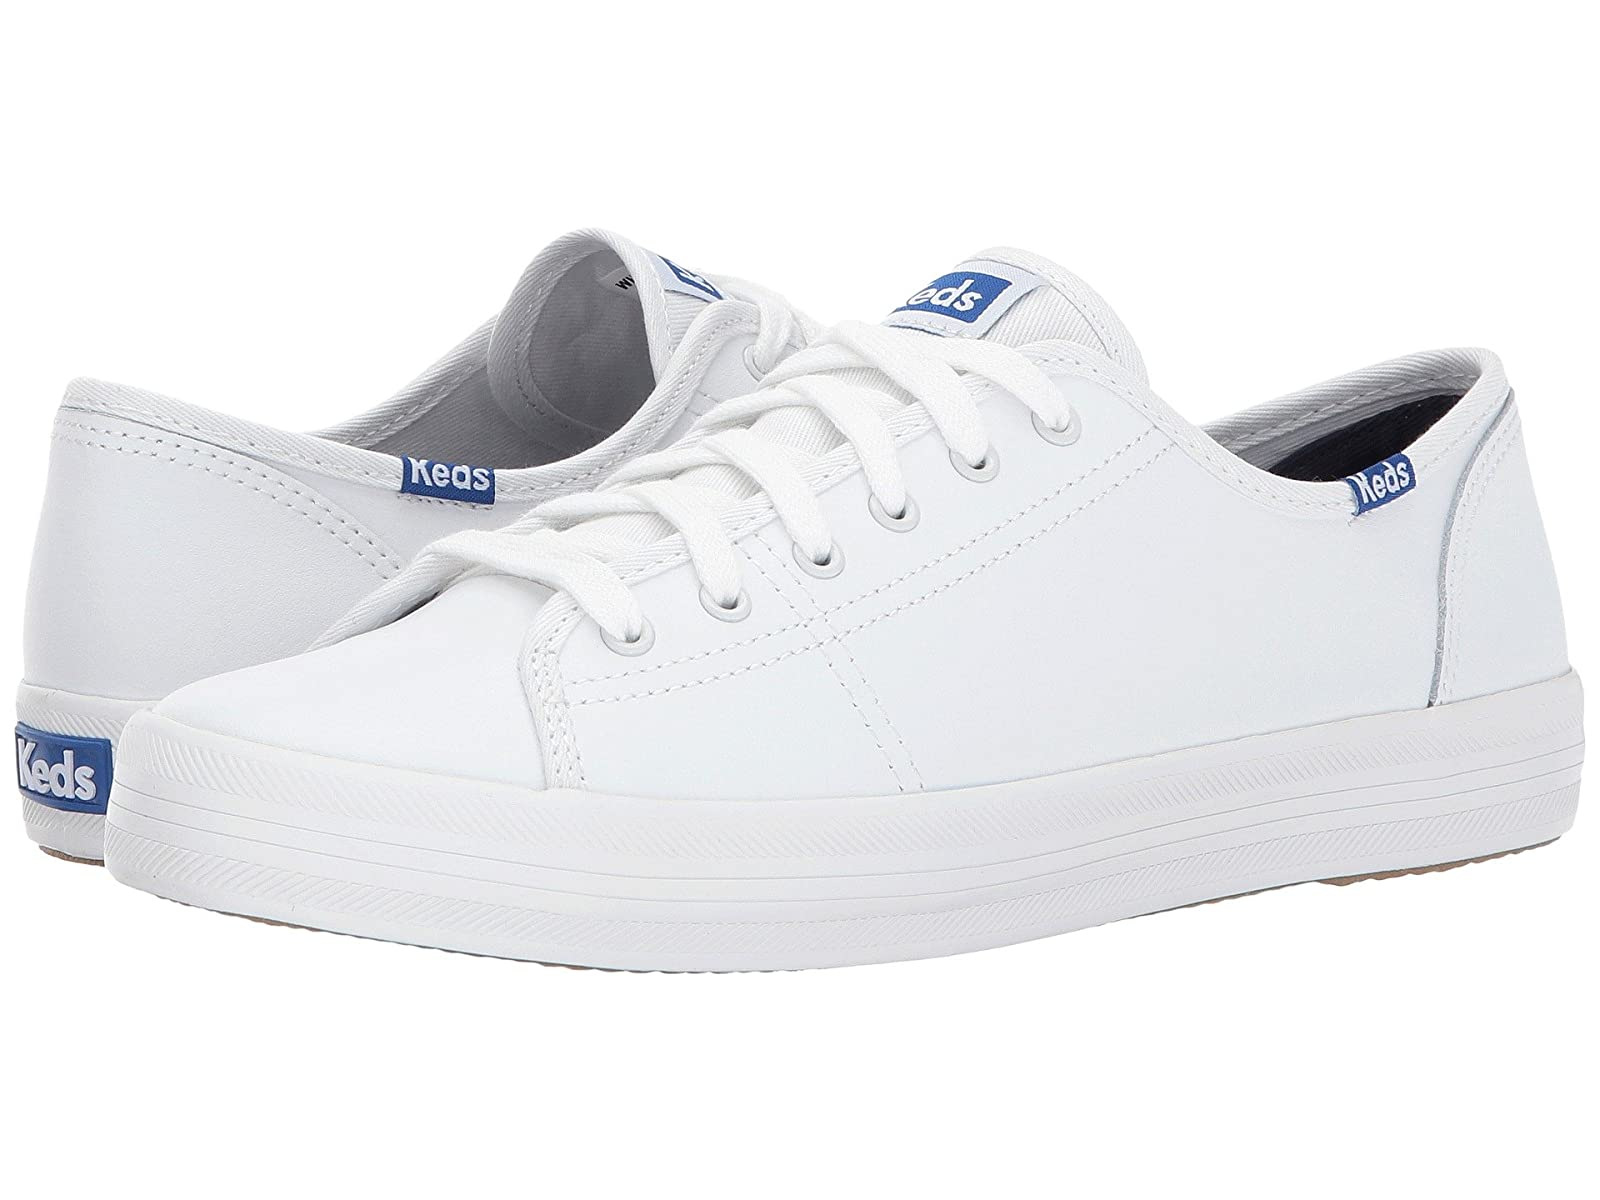 Keds Kickstart LeatherAtmospheric grades have affordable shoes